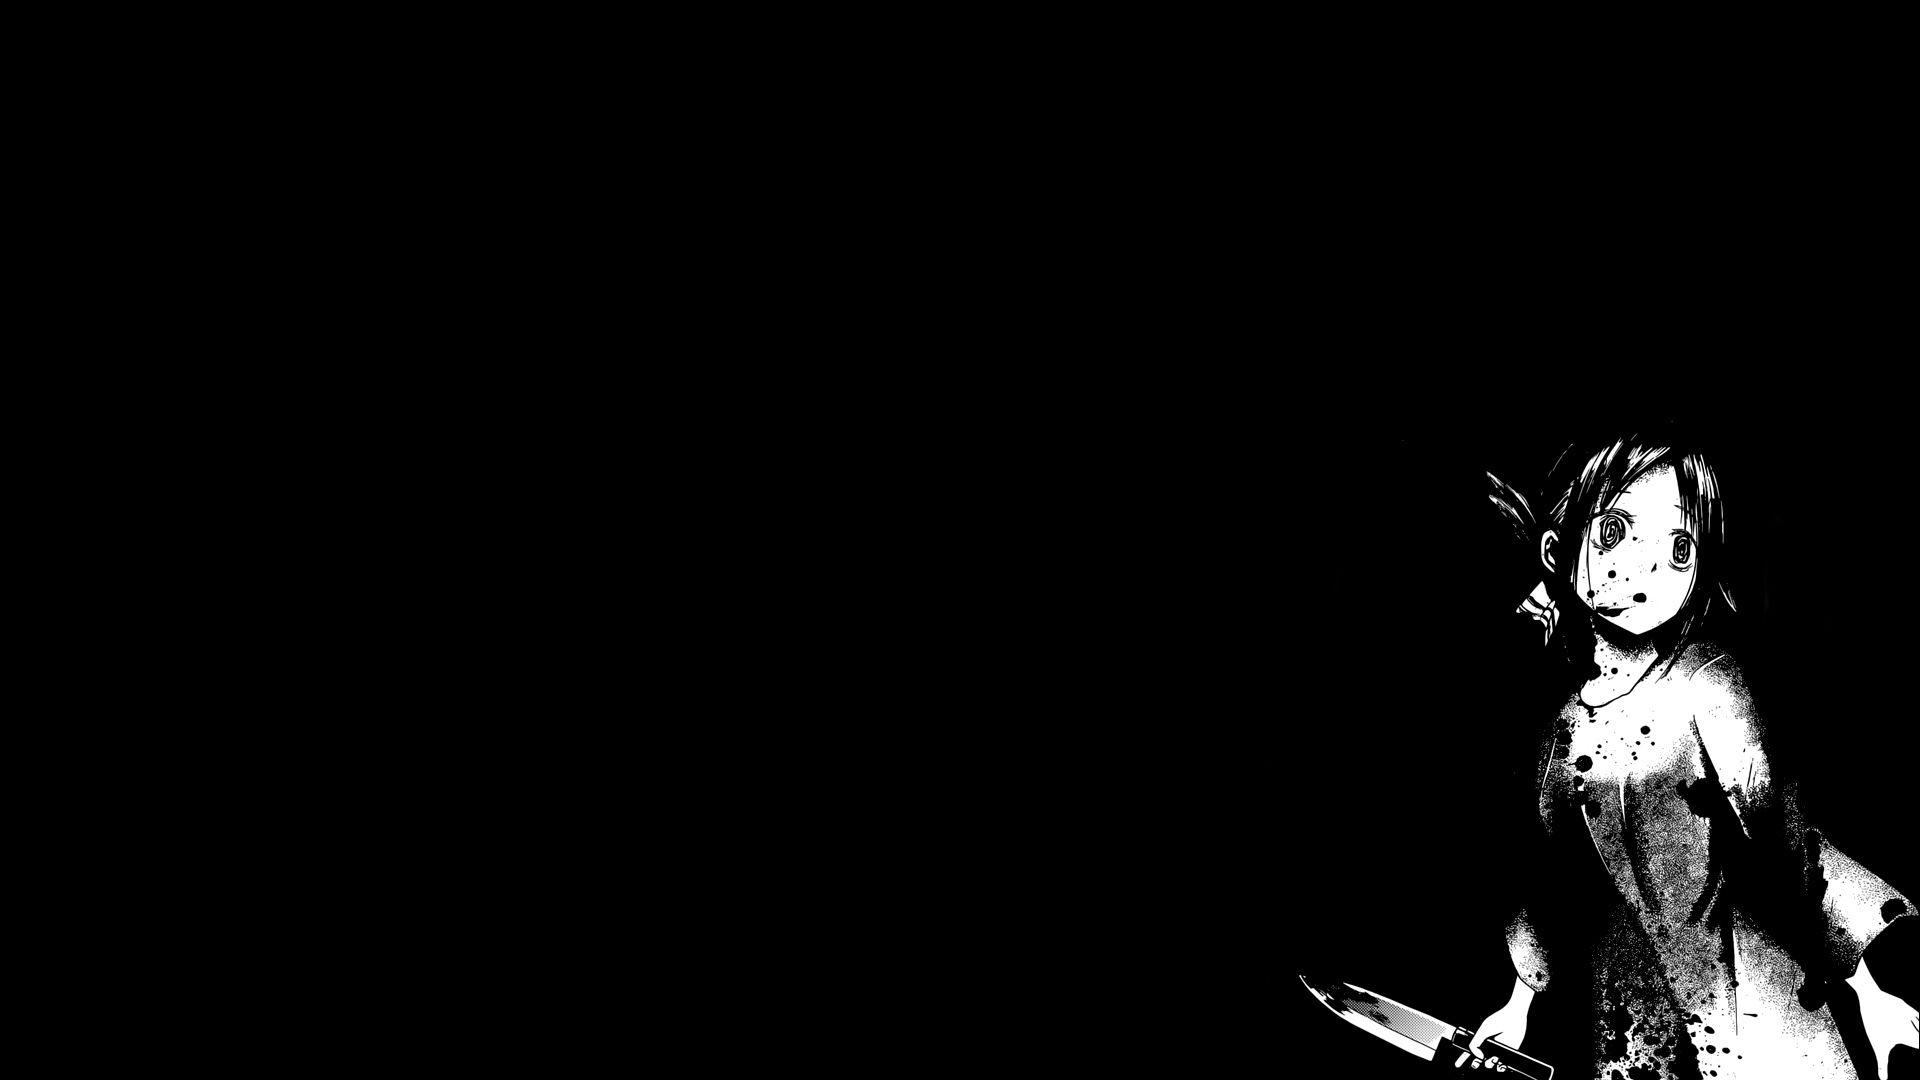 Black And White Anime 1920x1080 Wallpapers - Wallpaper Cave